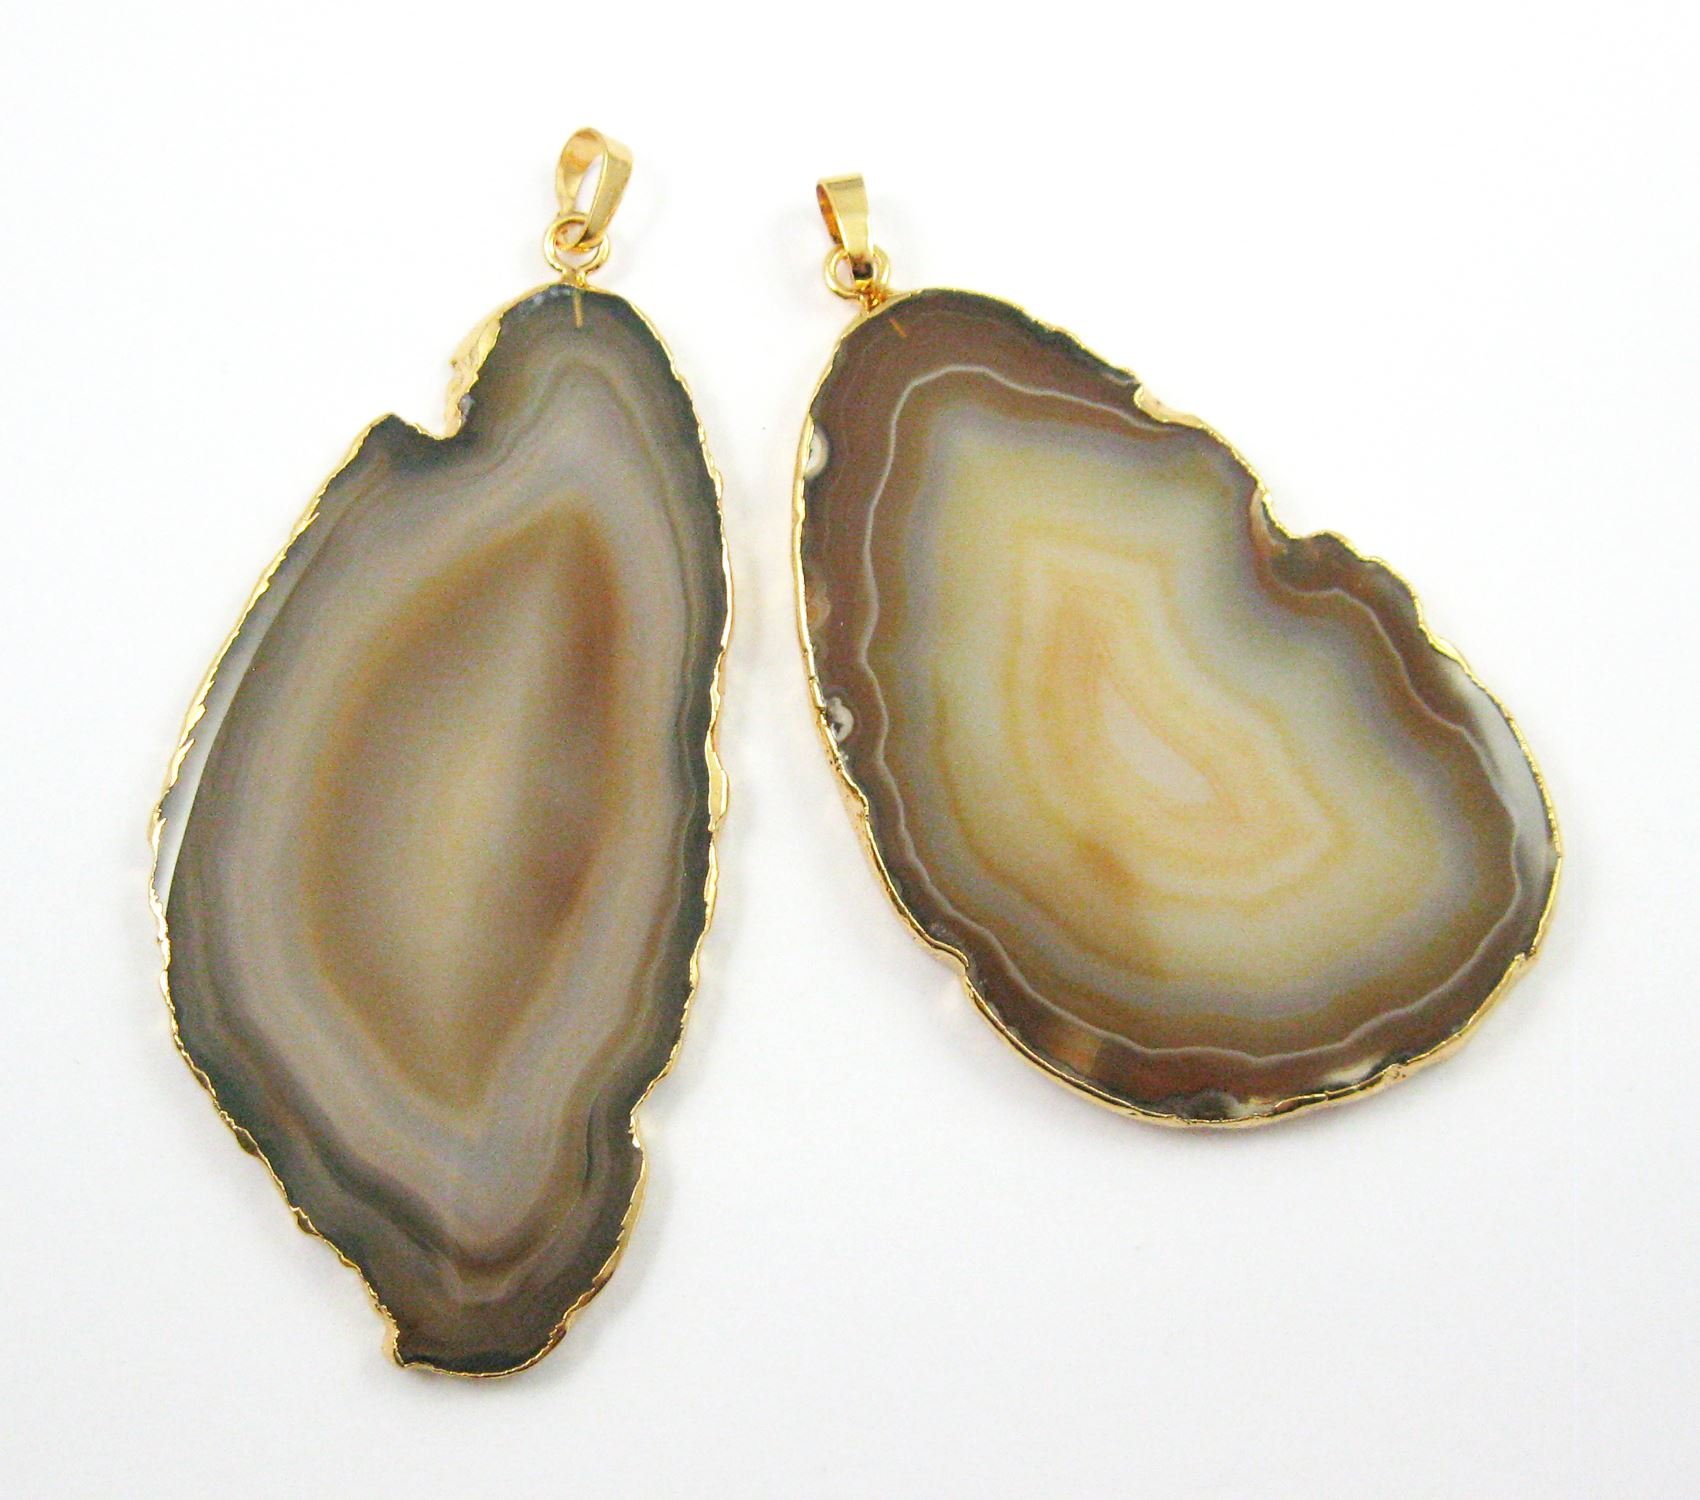 Agate Slice Pendant,Huge Pendant,Natural Agate Organic Oval Shape Pendant Gold Edging and Bail, Original Natural Color